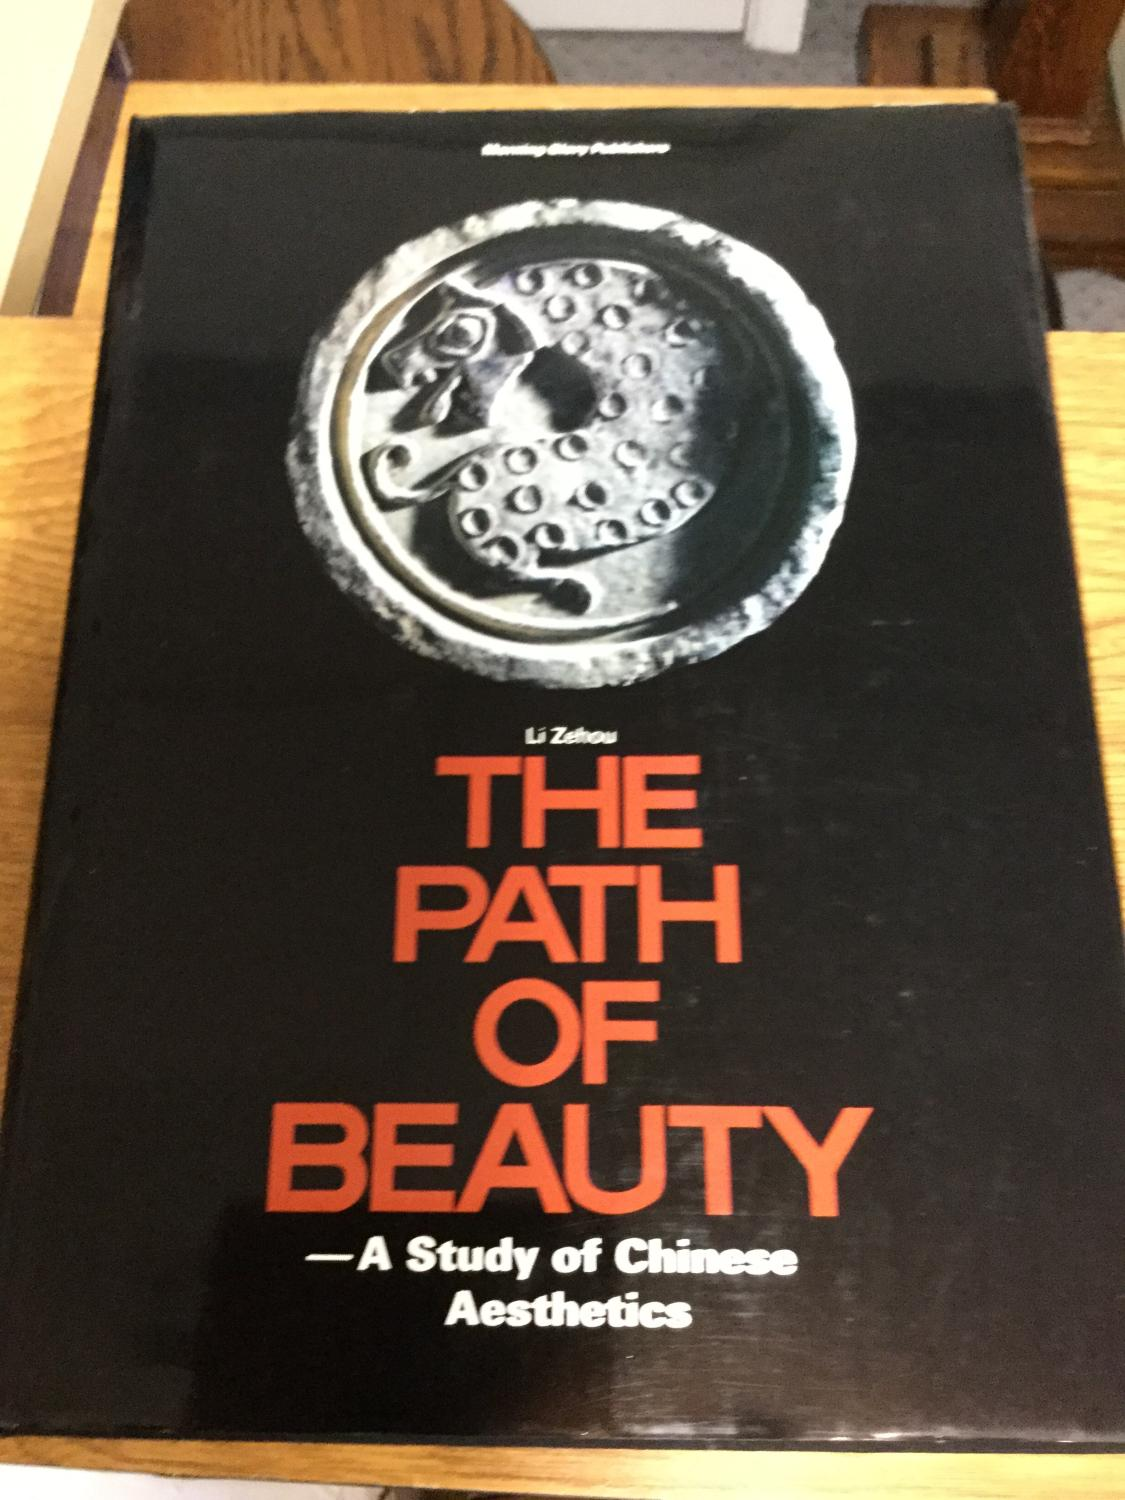 The_Path_of_Beauty_A_Study_of_Chinese_Aesthetics_Zehou,_Li;_translated_by_Gong_Lizeng_[Very_Good]_[Hardcover]